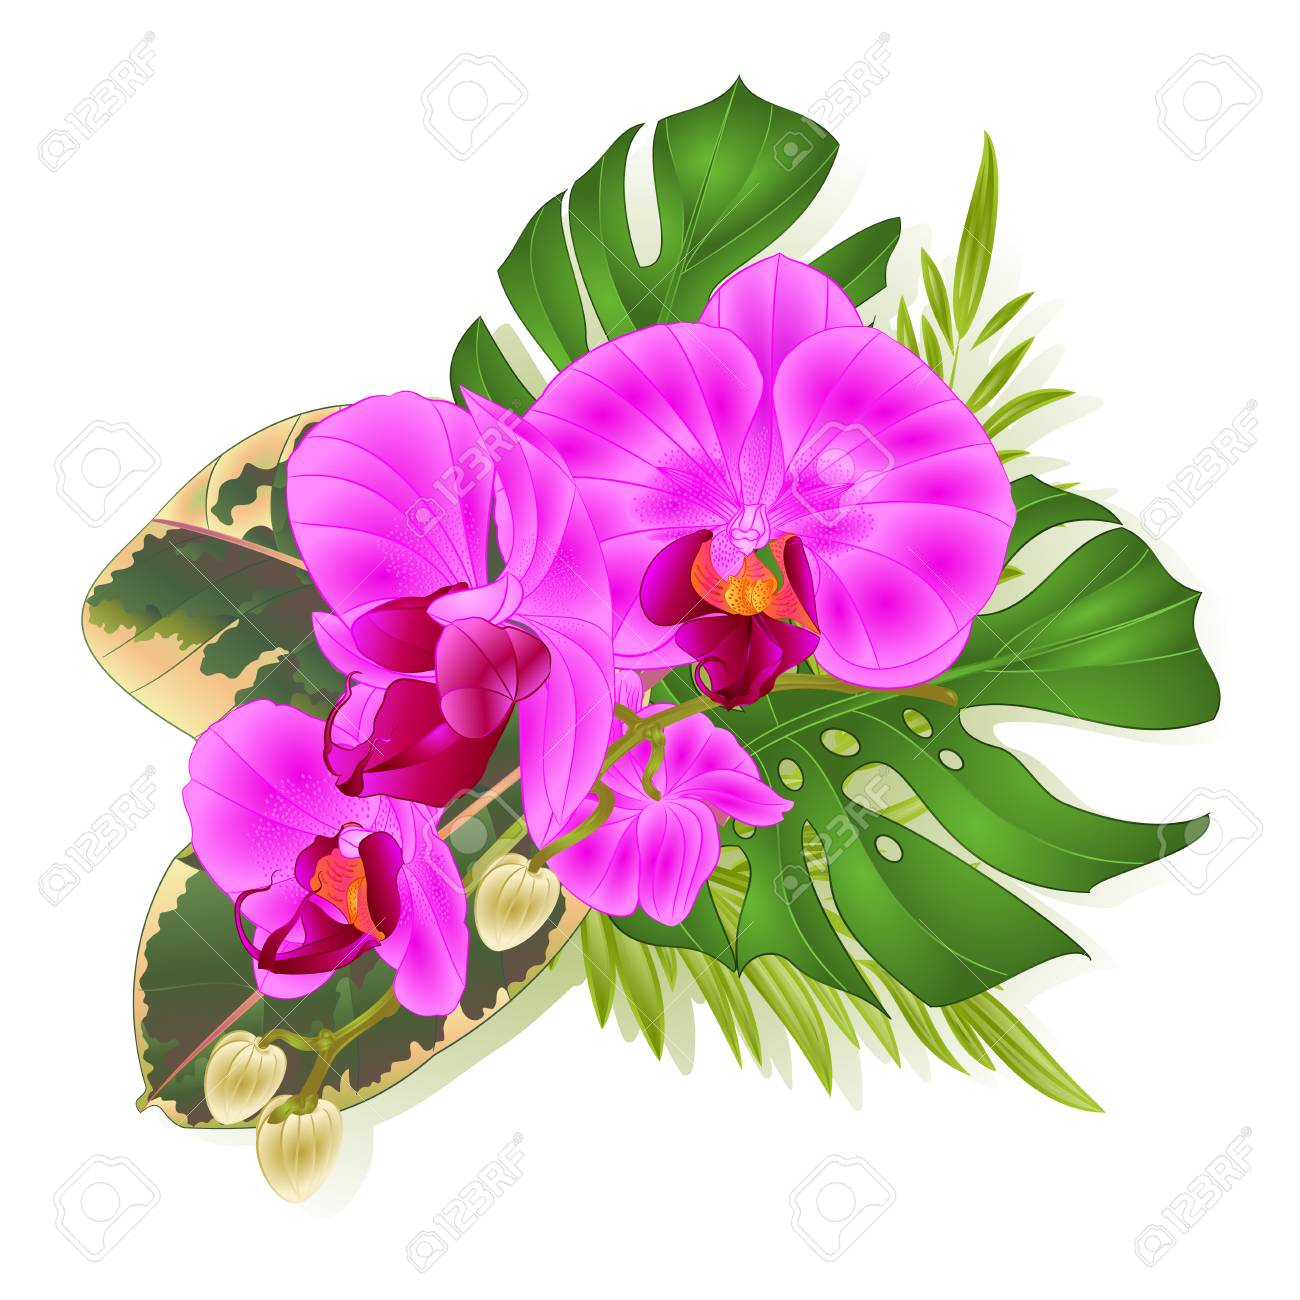 Bouquet with tropical flowers hawaiian style floral arrangement bouquet with tropical flowers hawaiian style floral arrangement with beautiful purple orchid palm izmirmasajfo